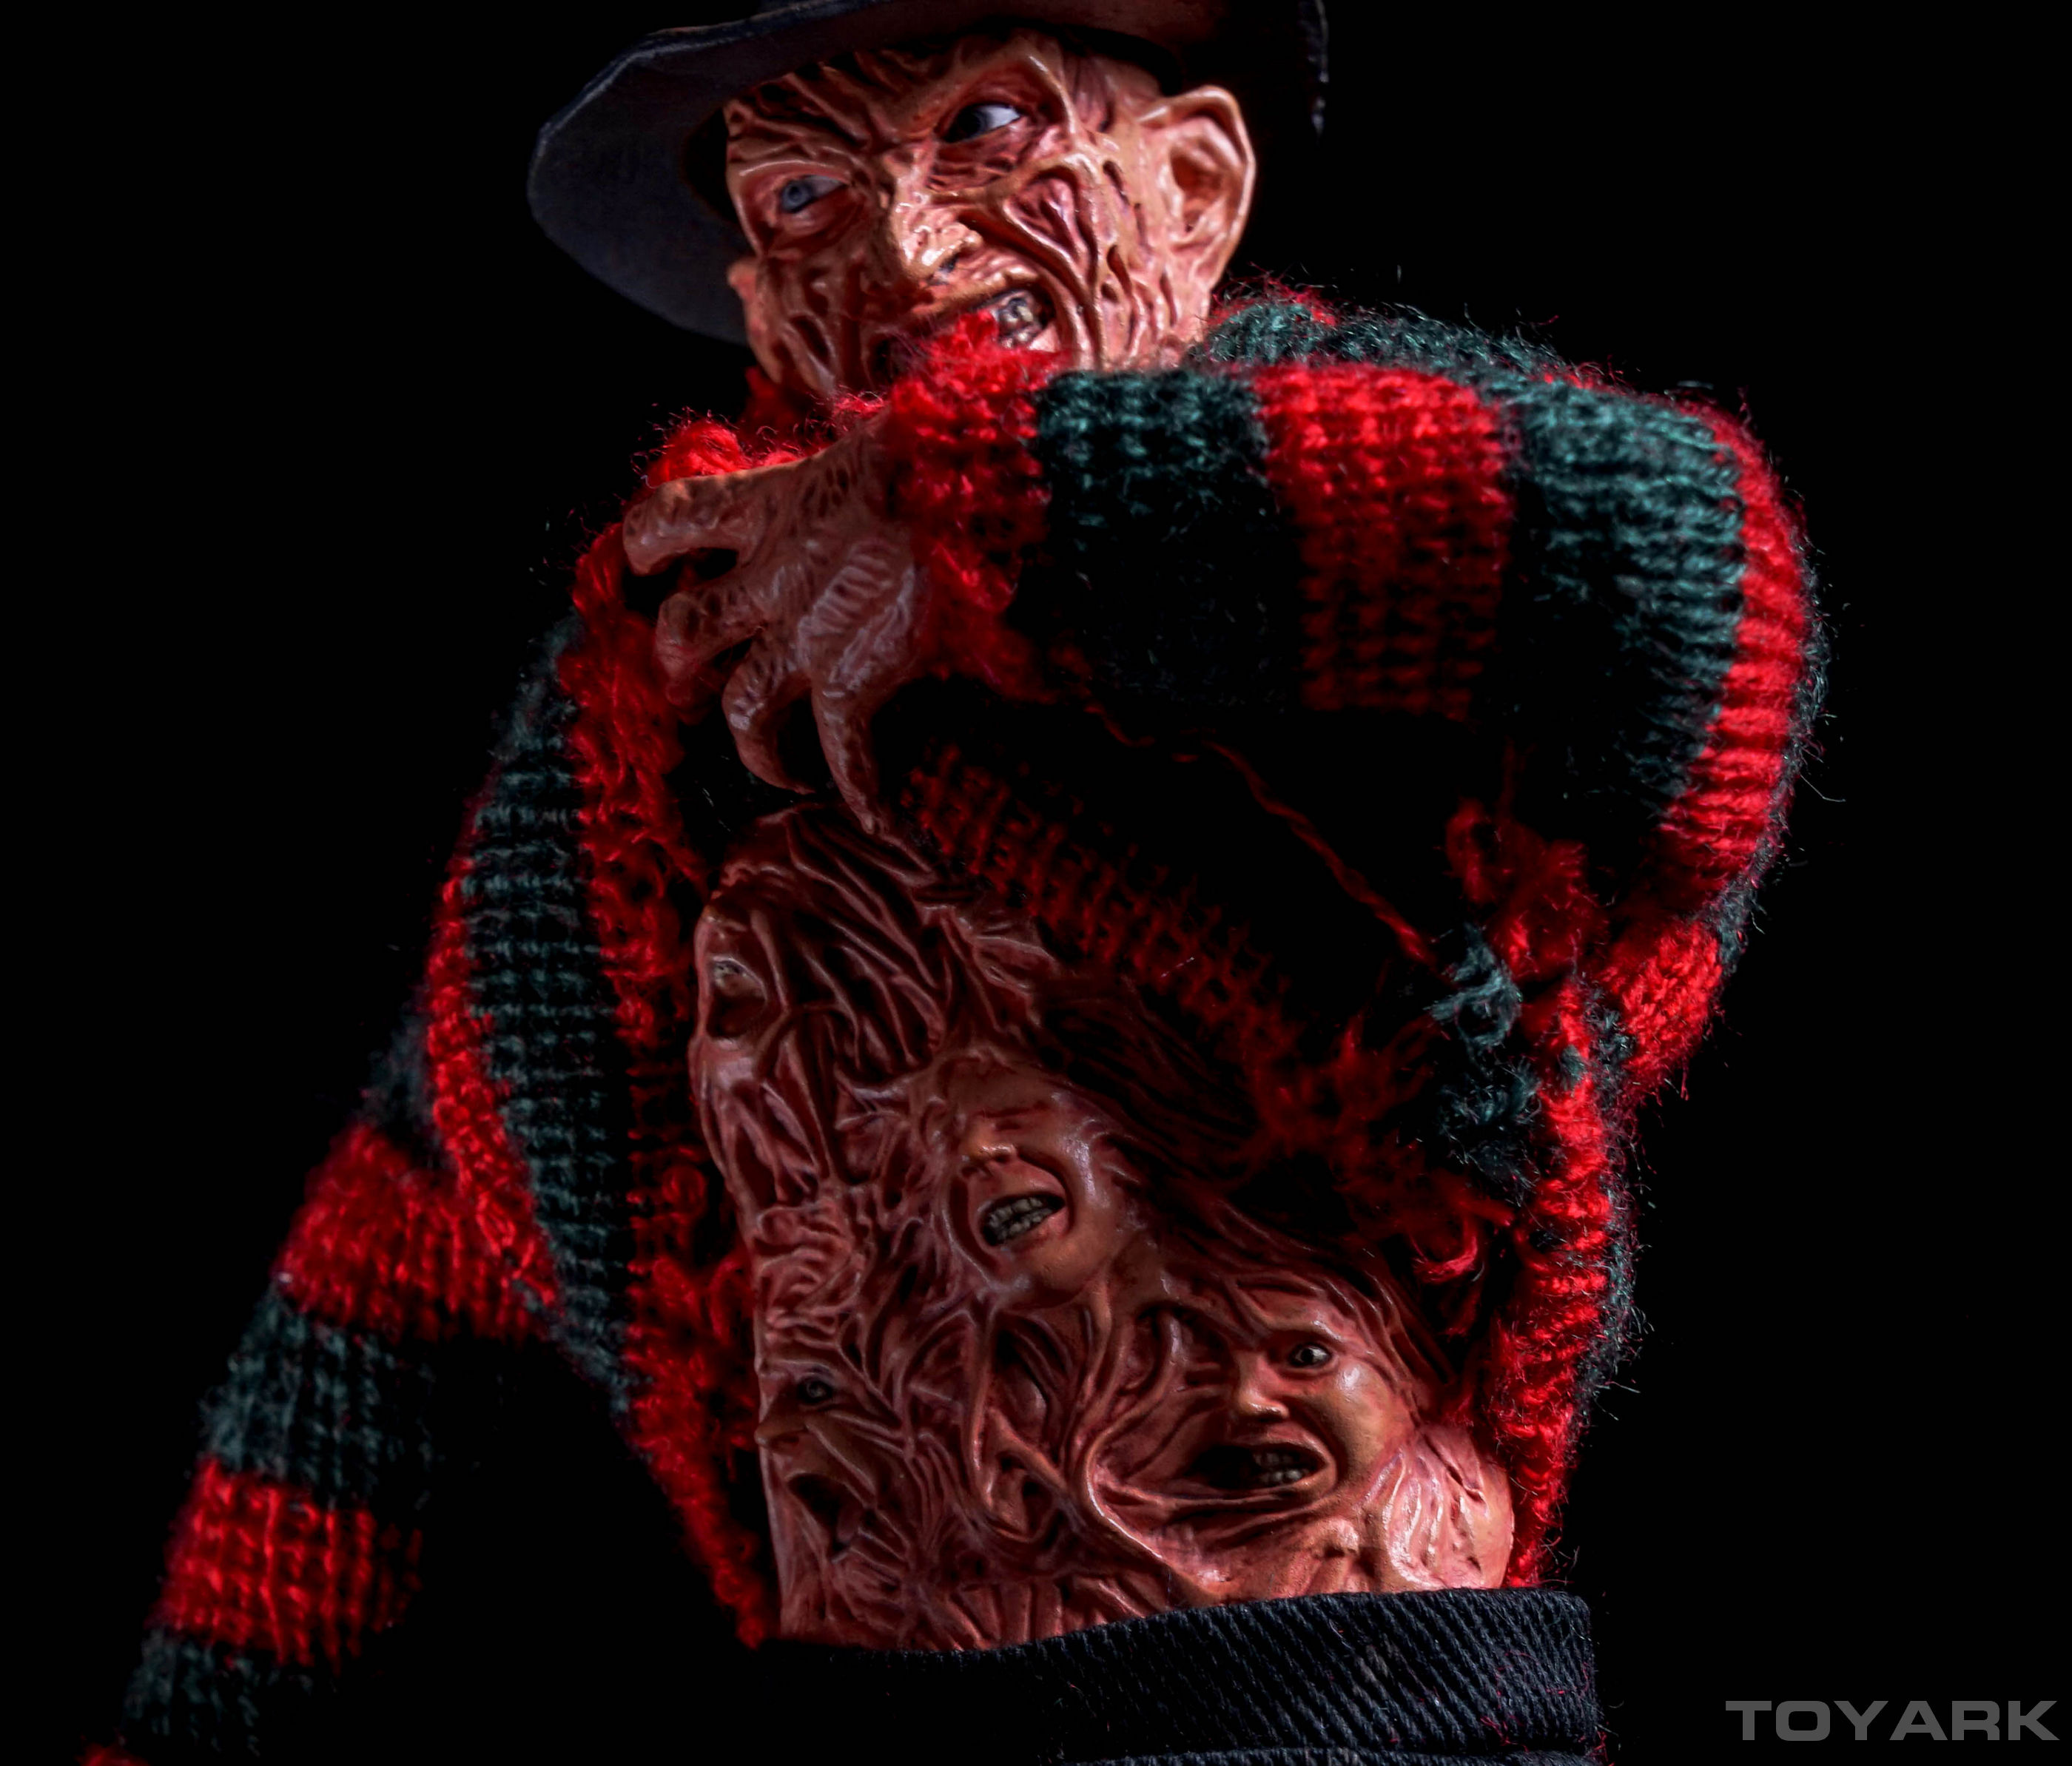 http://news.toyark.com/wp-content/uploads/sites/4/2015/10/NECA-Dream-Warriors-Retro-Freddy-032.jpg